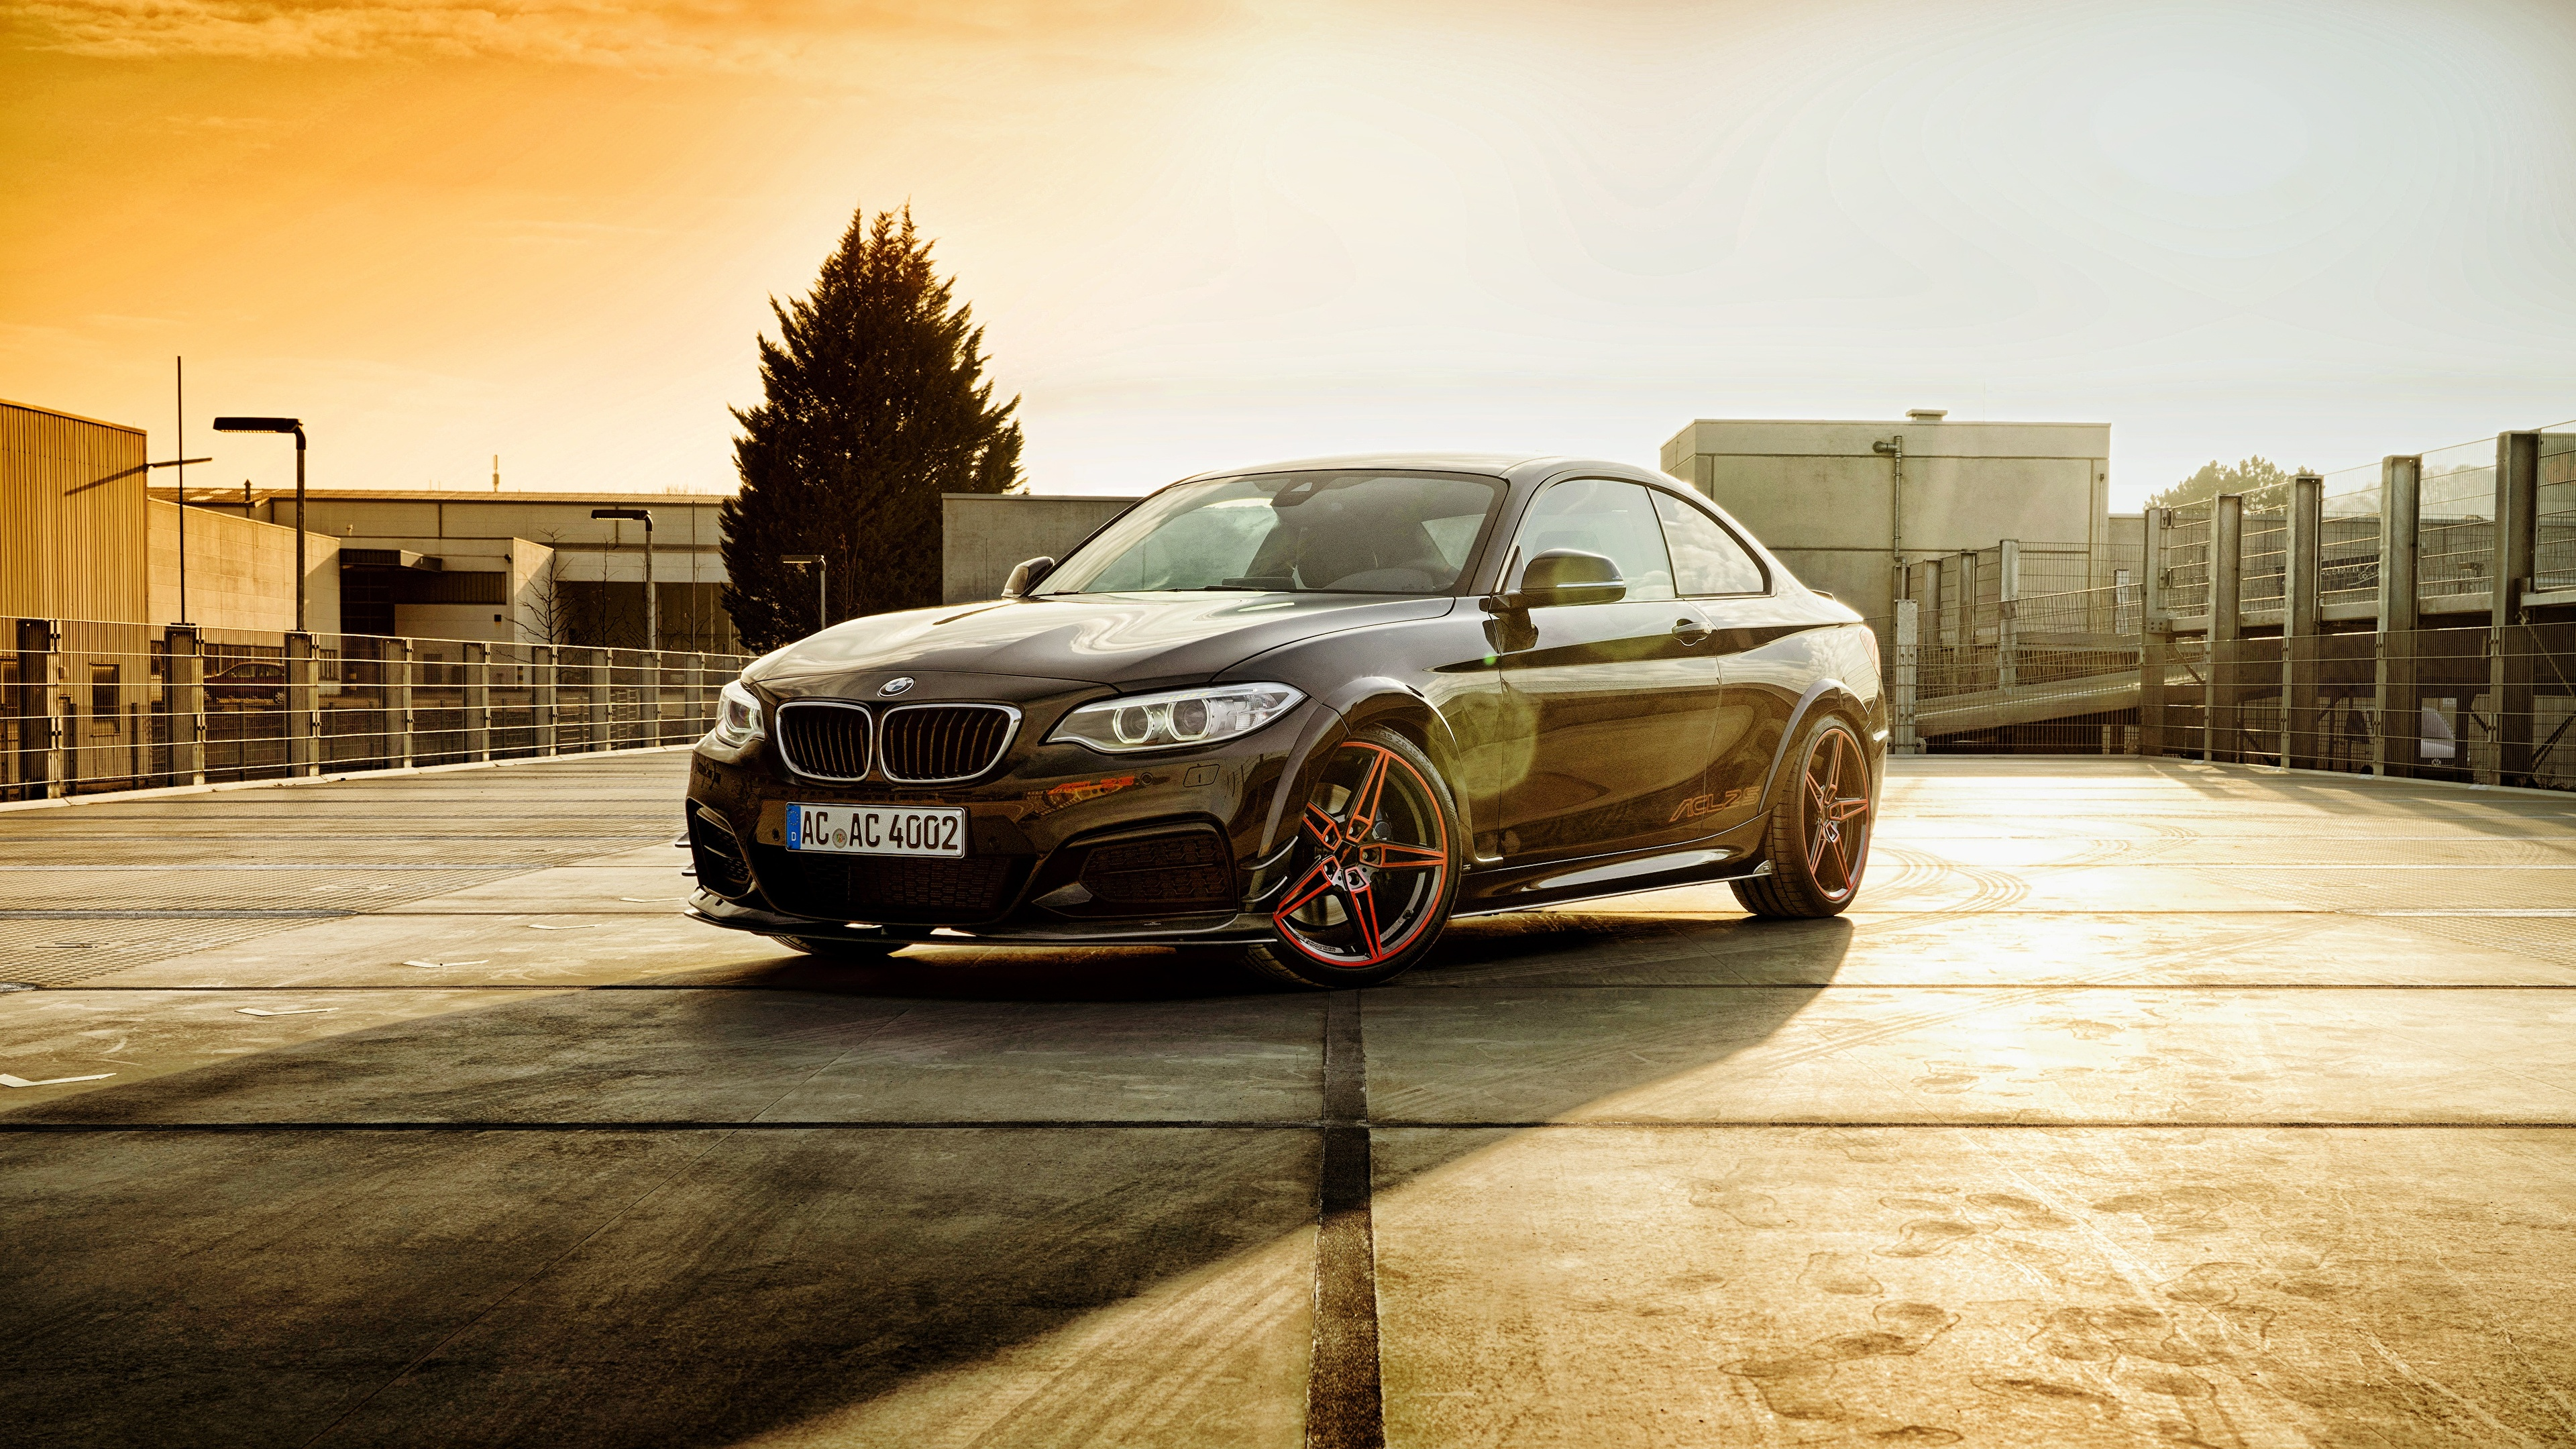 Wallpaper BMW F22, 2-Series Coupe Cars 3840x2160